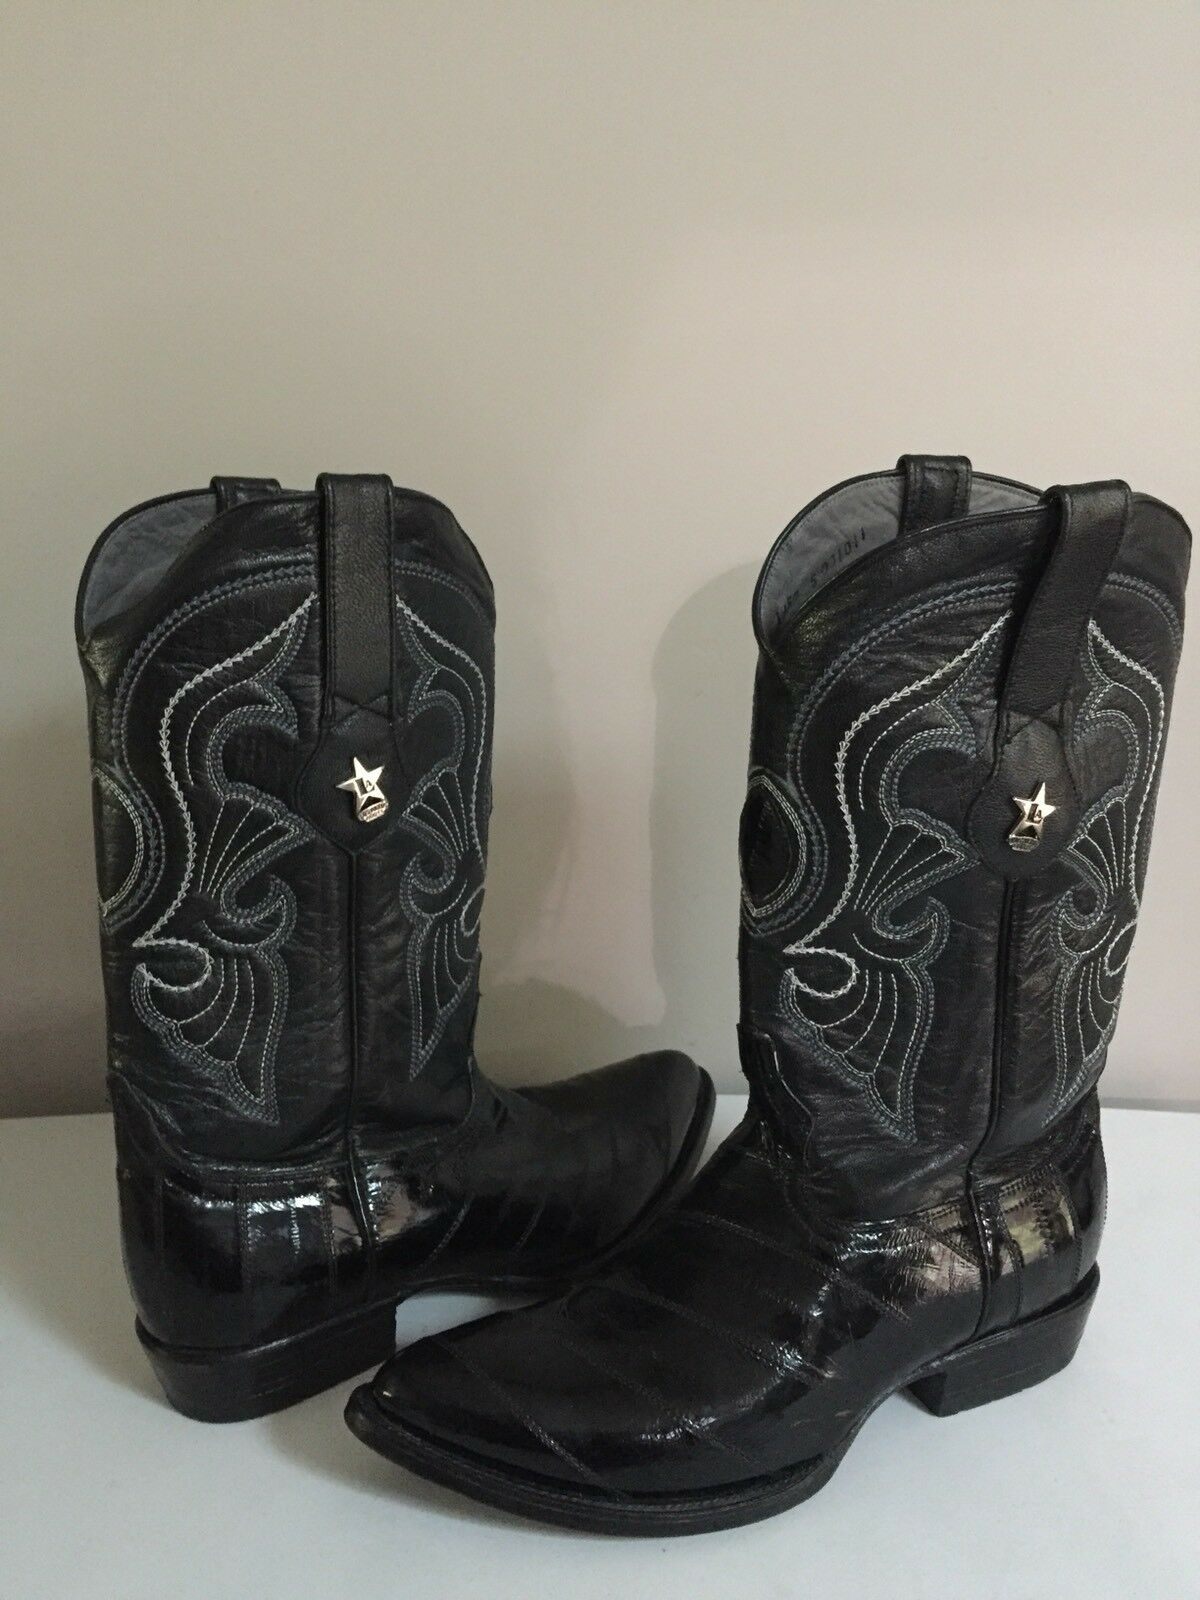 Los Altos Men's Boots Black & Grey Genuine eel Skin Sz 10 D Western Wear Cowboy